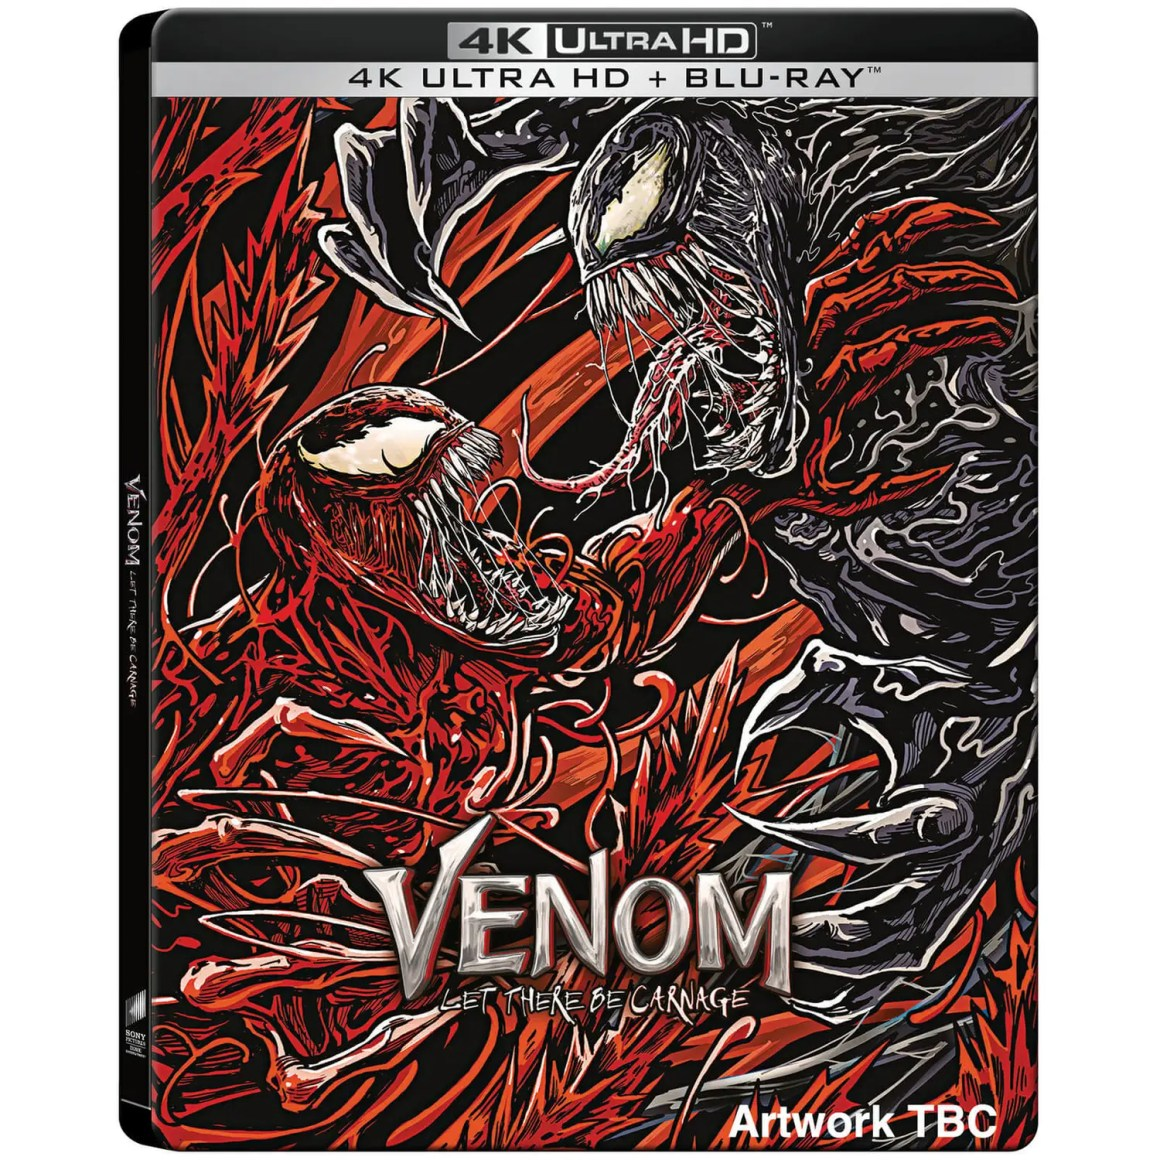 Venom: Let There Be Carnage – 4k Ultra HD Limited Edition Steelbook – Pre Order £29.99 at Zavvi